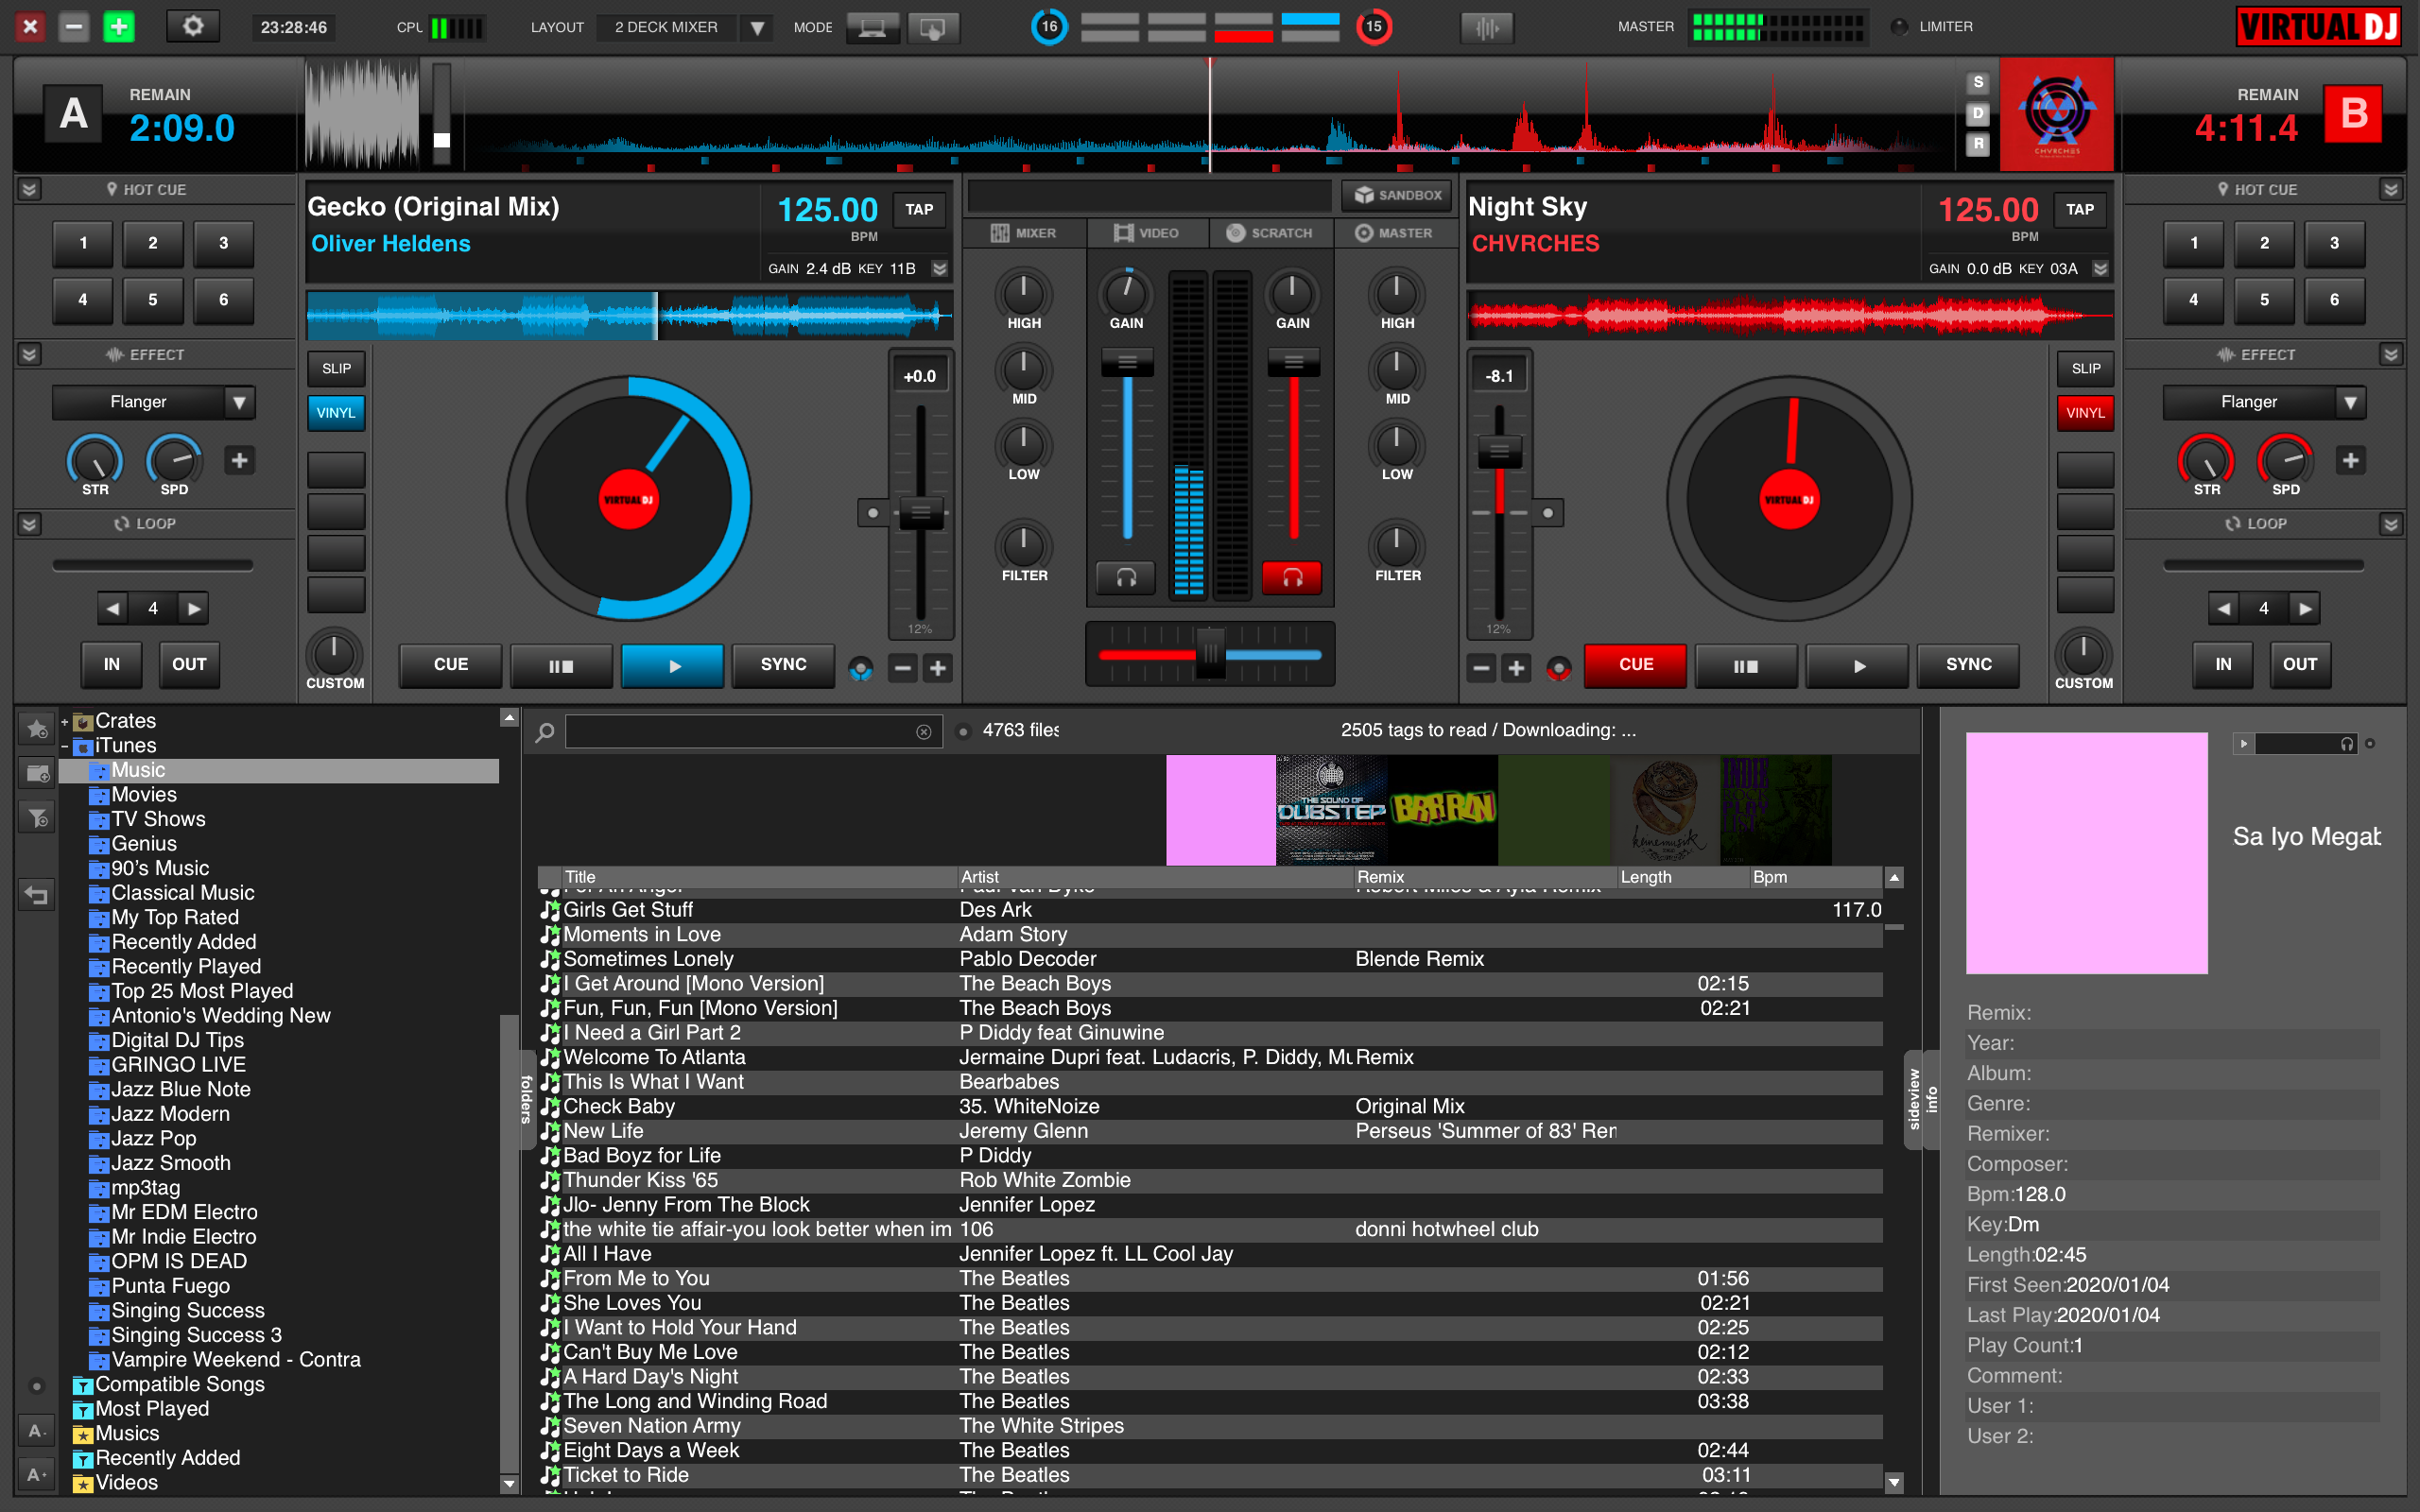 Virtual DJ 8 Interface